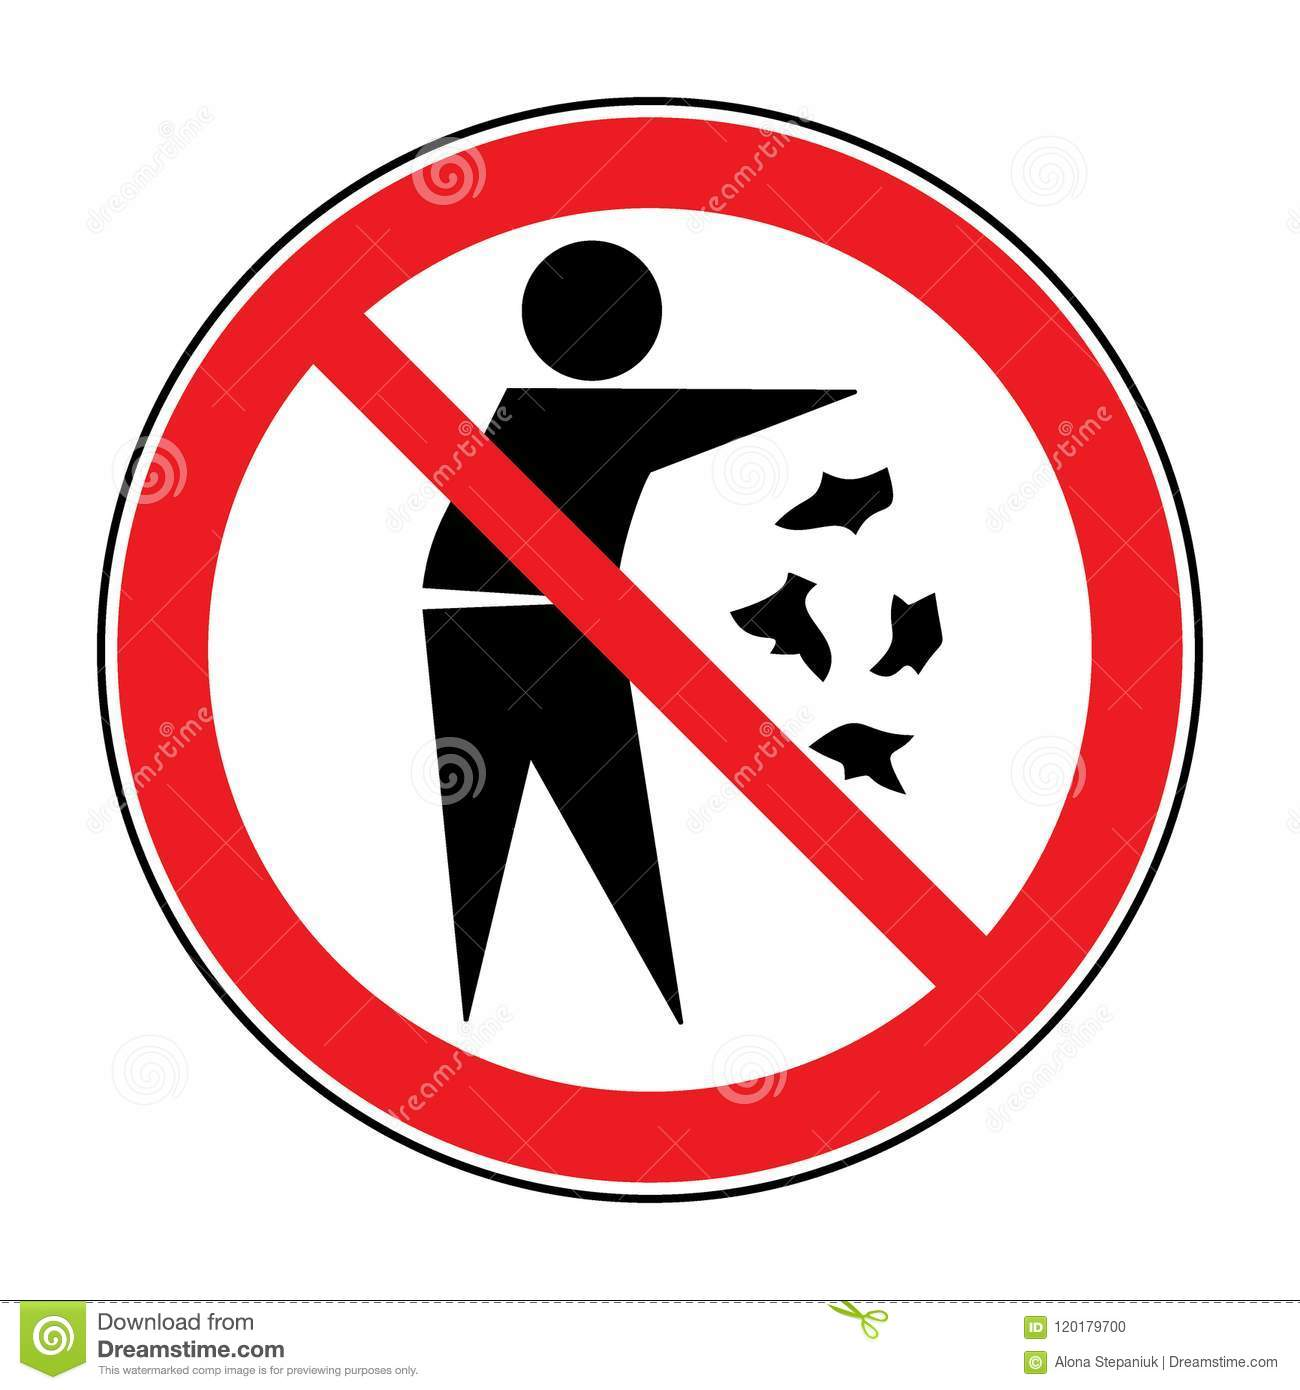 No Trash Sign Stock Vector Illustration Of Pictogram 120179700